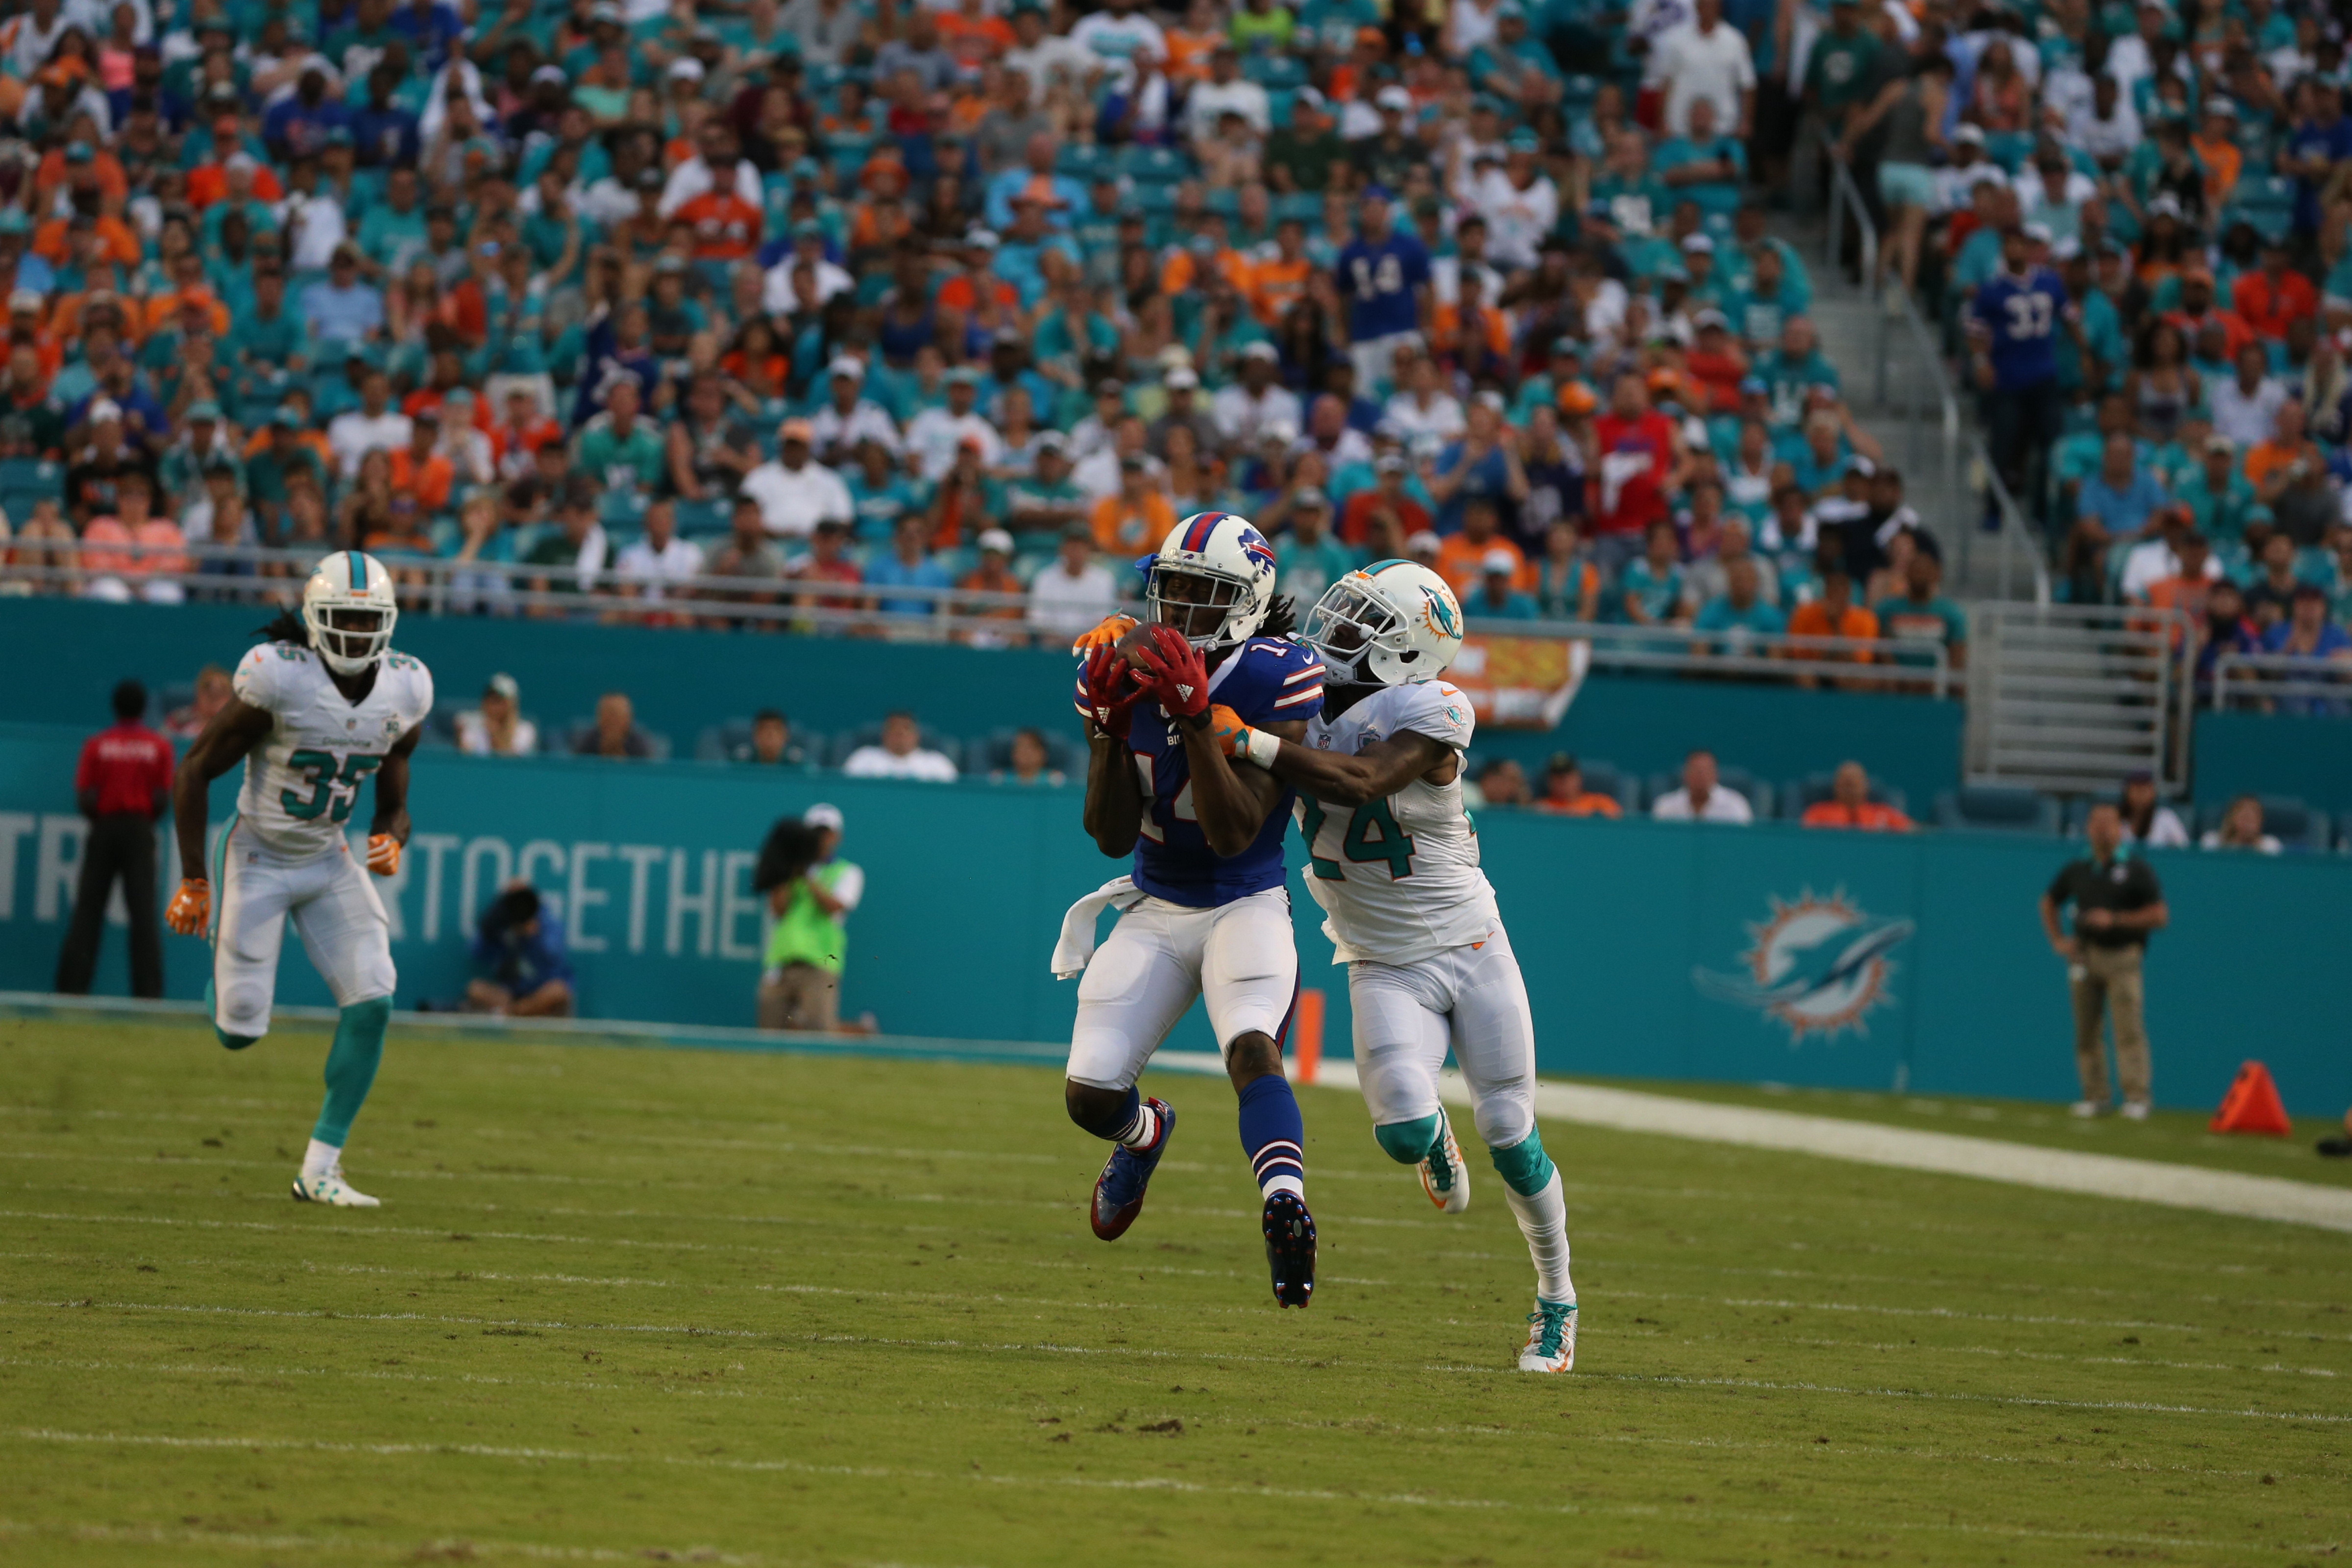 Bills wide receiver Sammy Watkins catches the ball over a Dolphins defender during the Sept. 27 game in Miami.